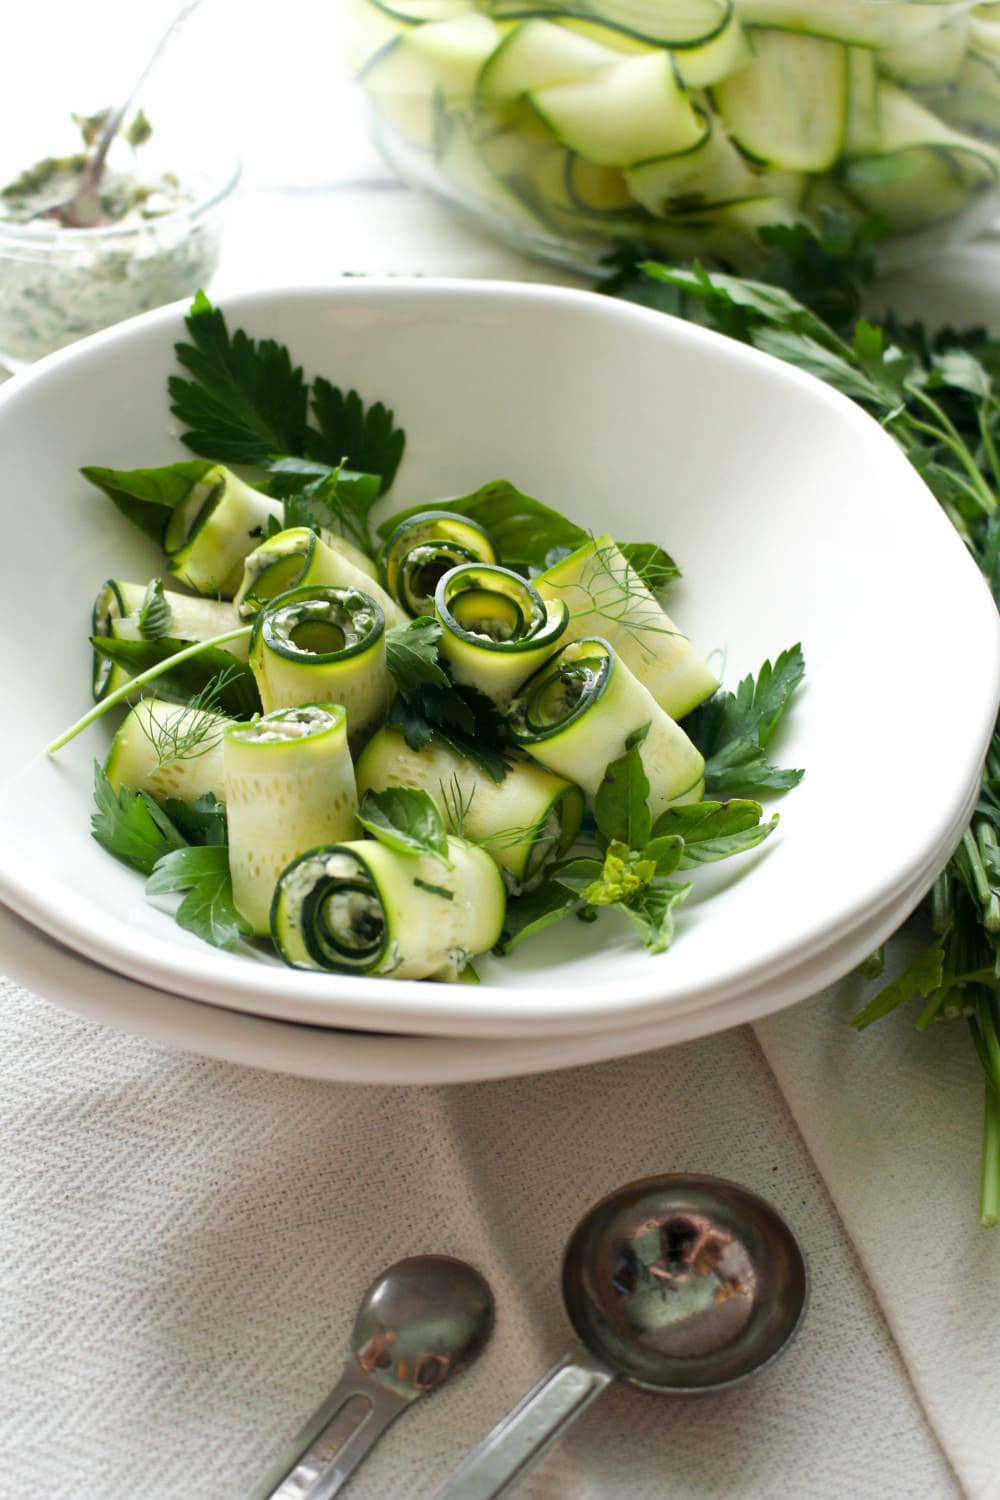 Hummus, herbs, and zucchini are all you need to make this tasty summer dish!